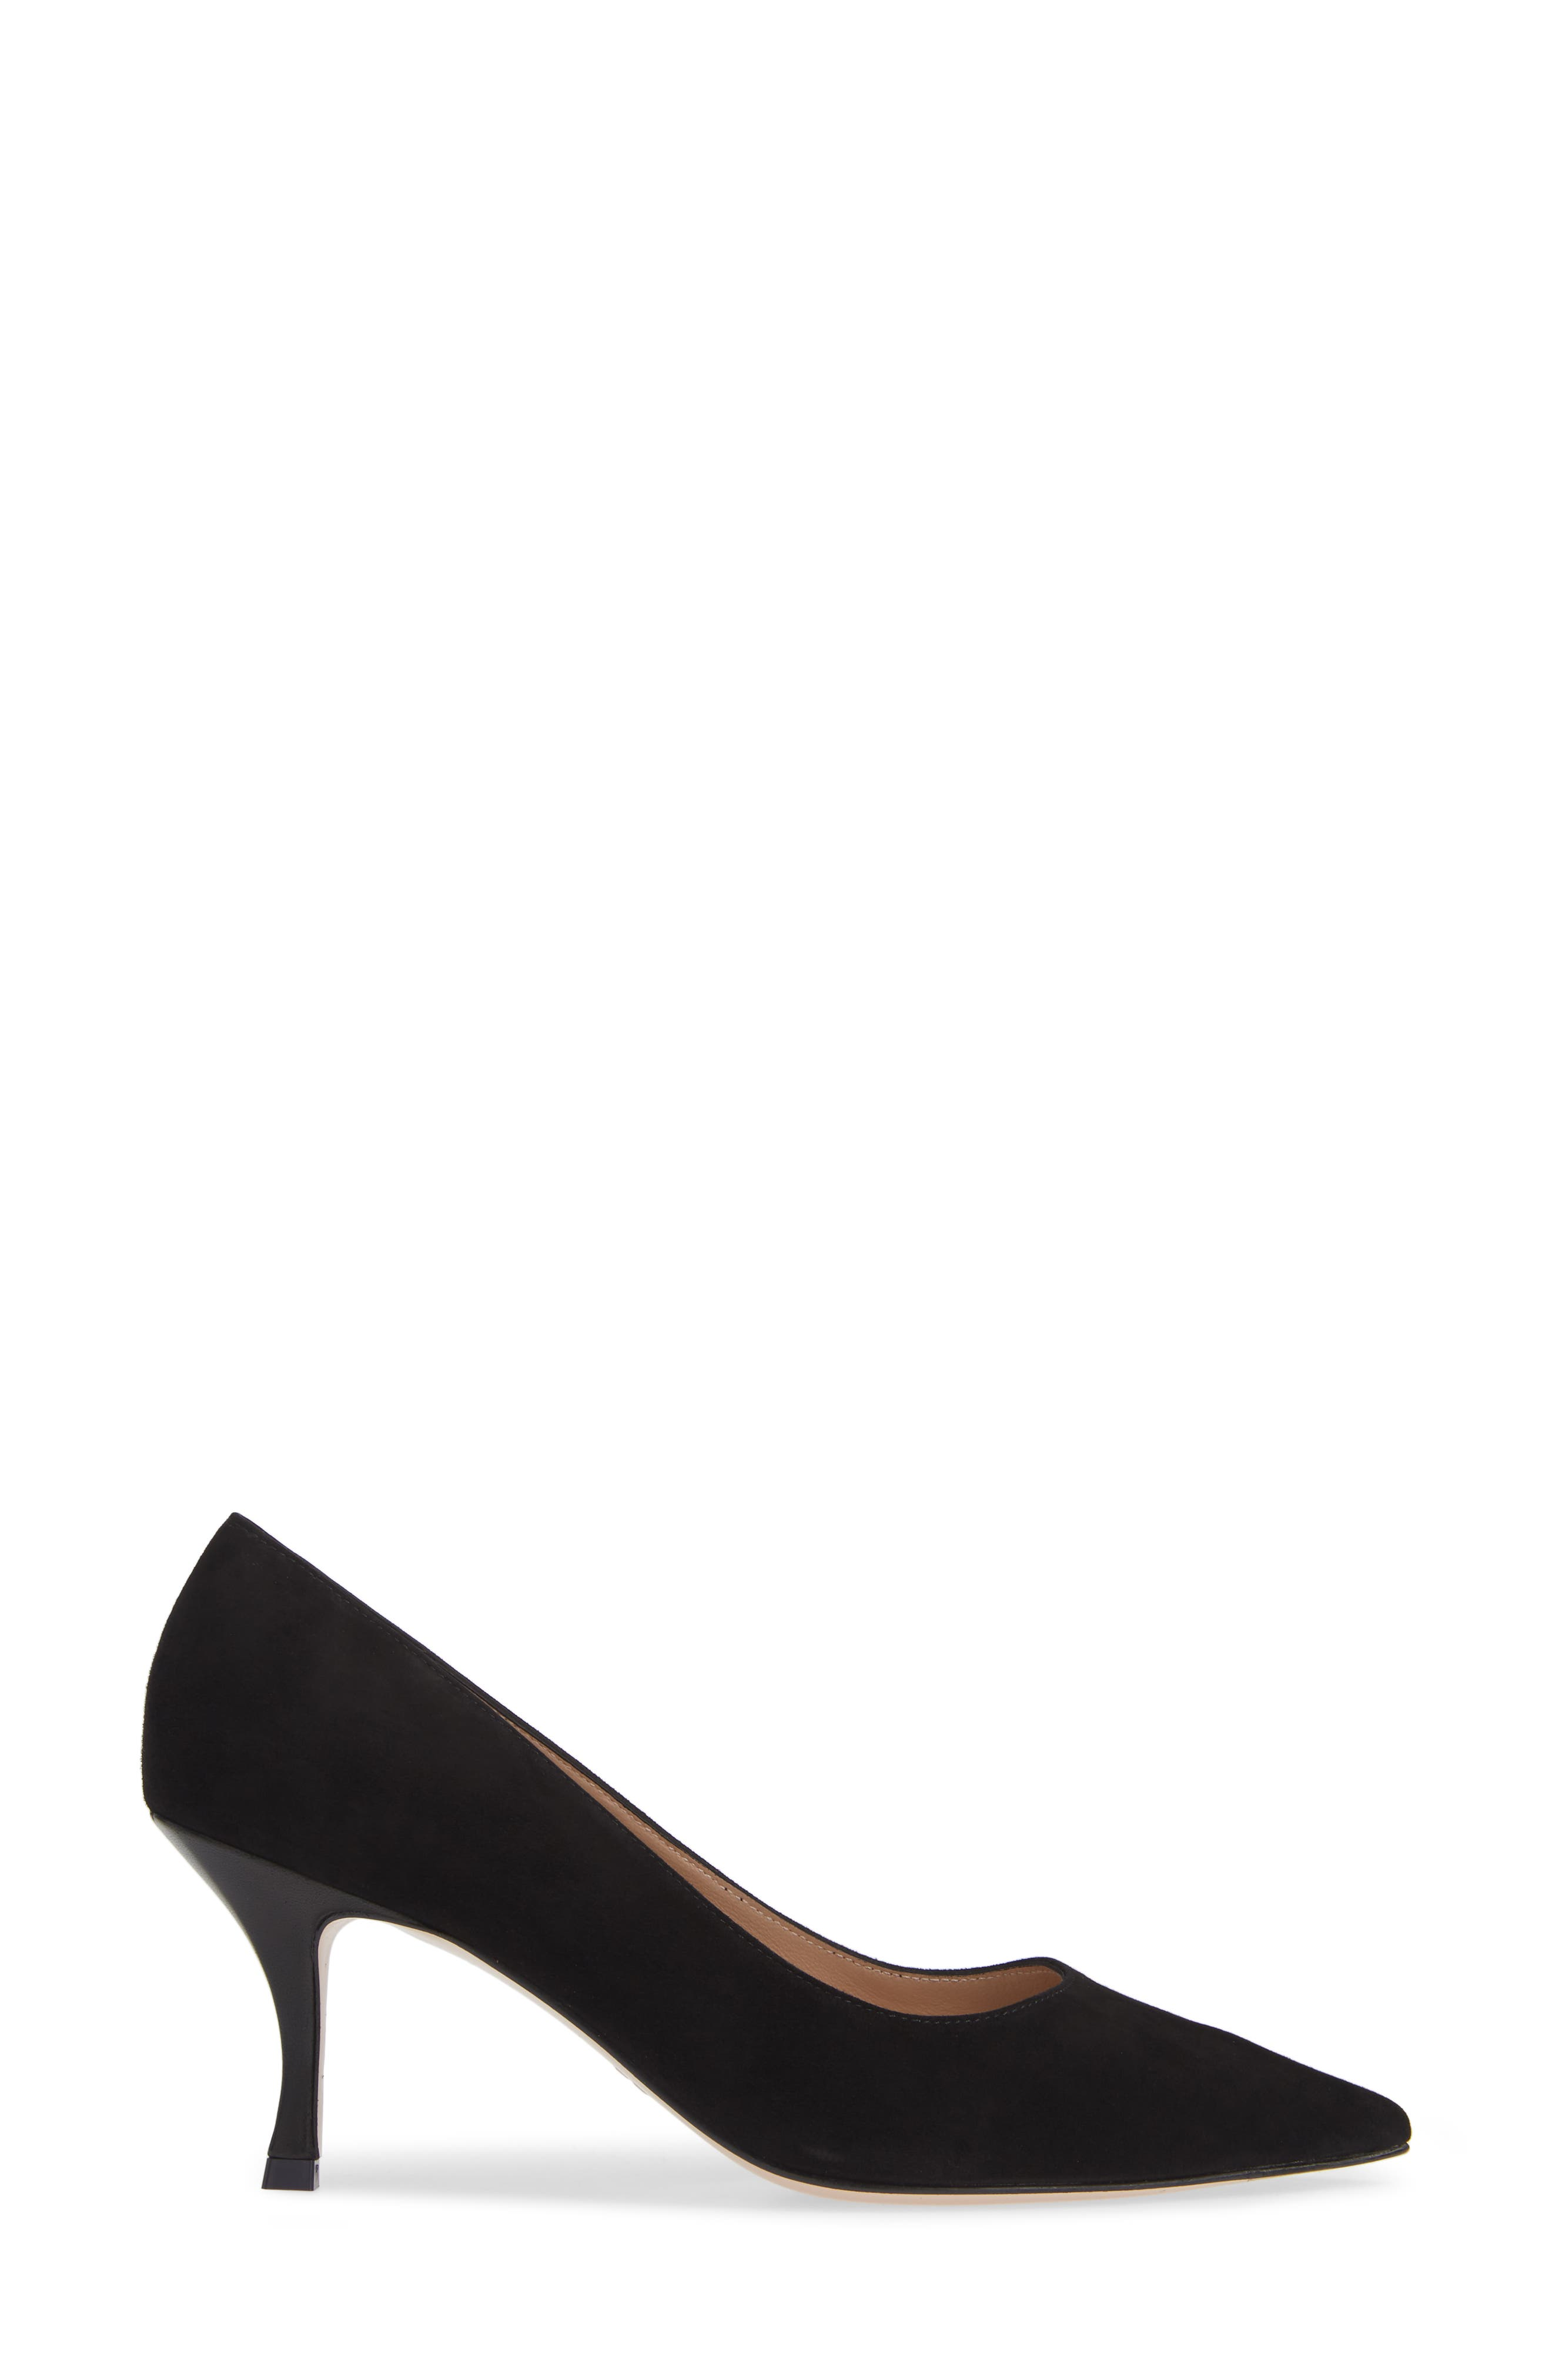 Tippi 70 Pointy Toe Pump,                             Alternate thumbnail 3, color,                             PITCH BLACK